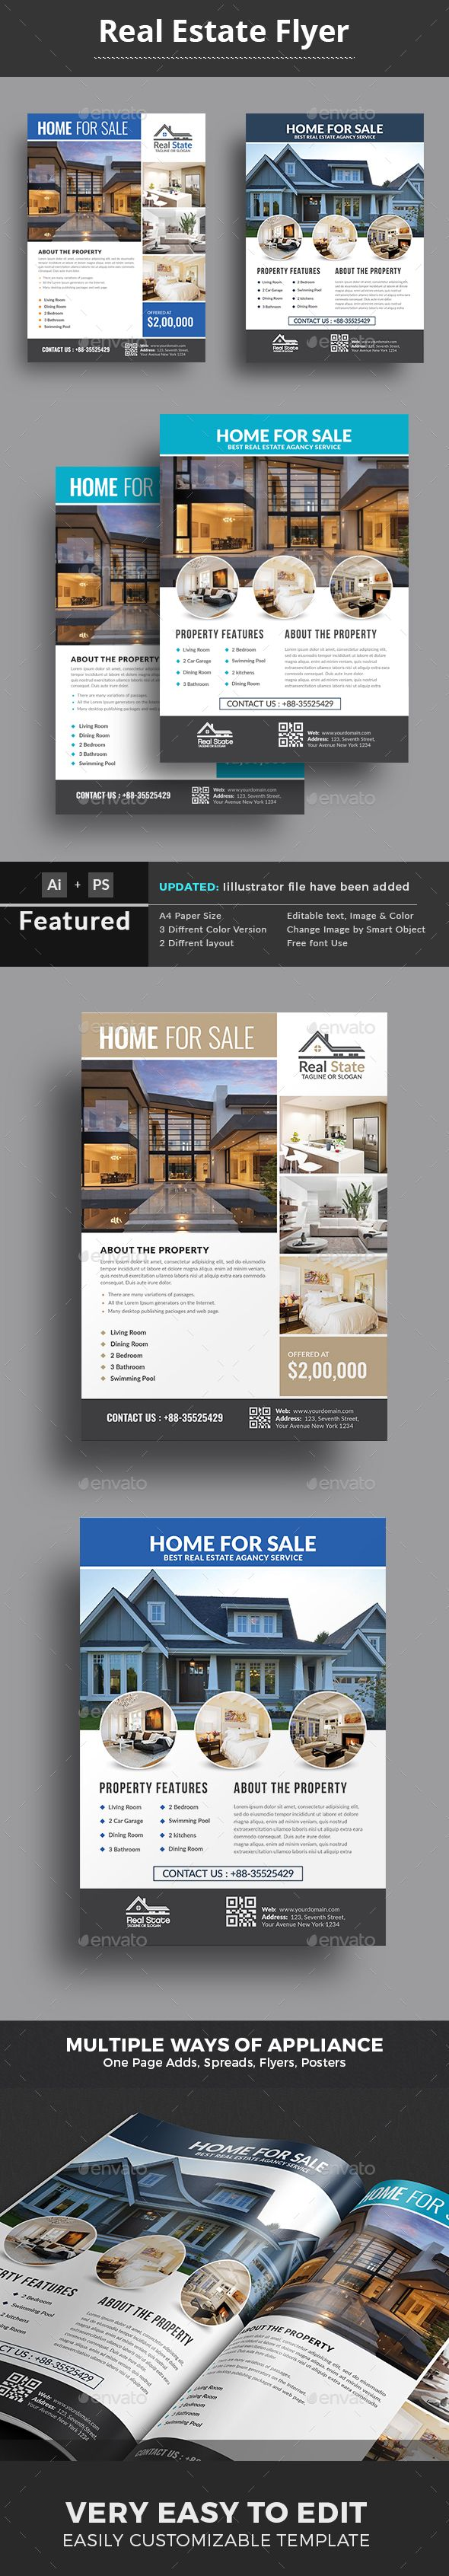 This $Real Estate $Flyer Template is a great tool for promoting your real estate business also useful for a realtor or a real estate agent. You can use it for real estate listings, advertising homes or property for sale,or houses for rent. Fully editable template, you can add images of your choice and change the texts. Download here: https://graphicriver.net/item/real-estate-flyer-template/18447679?ref=classicdesignp